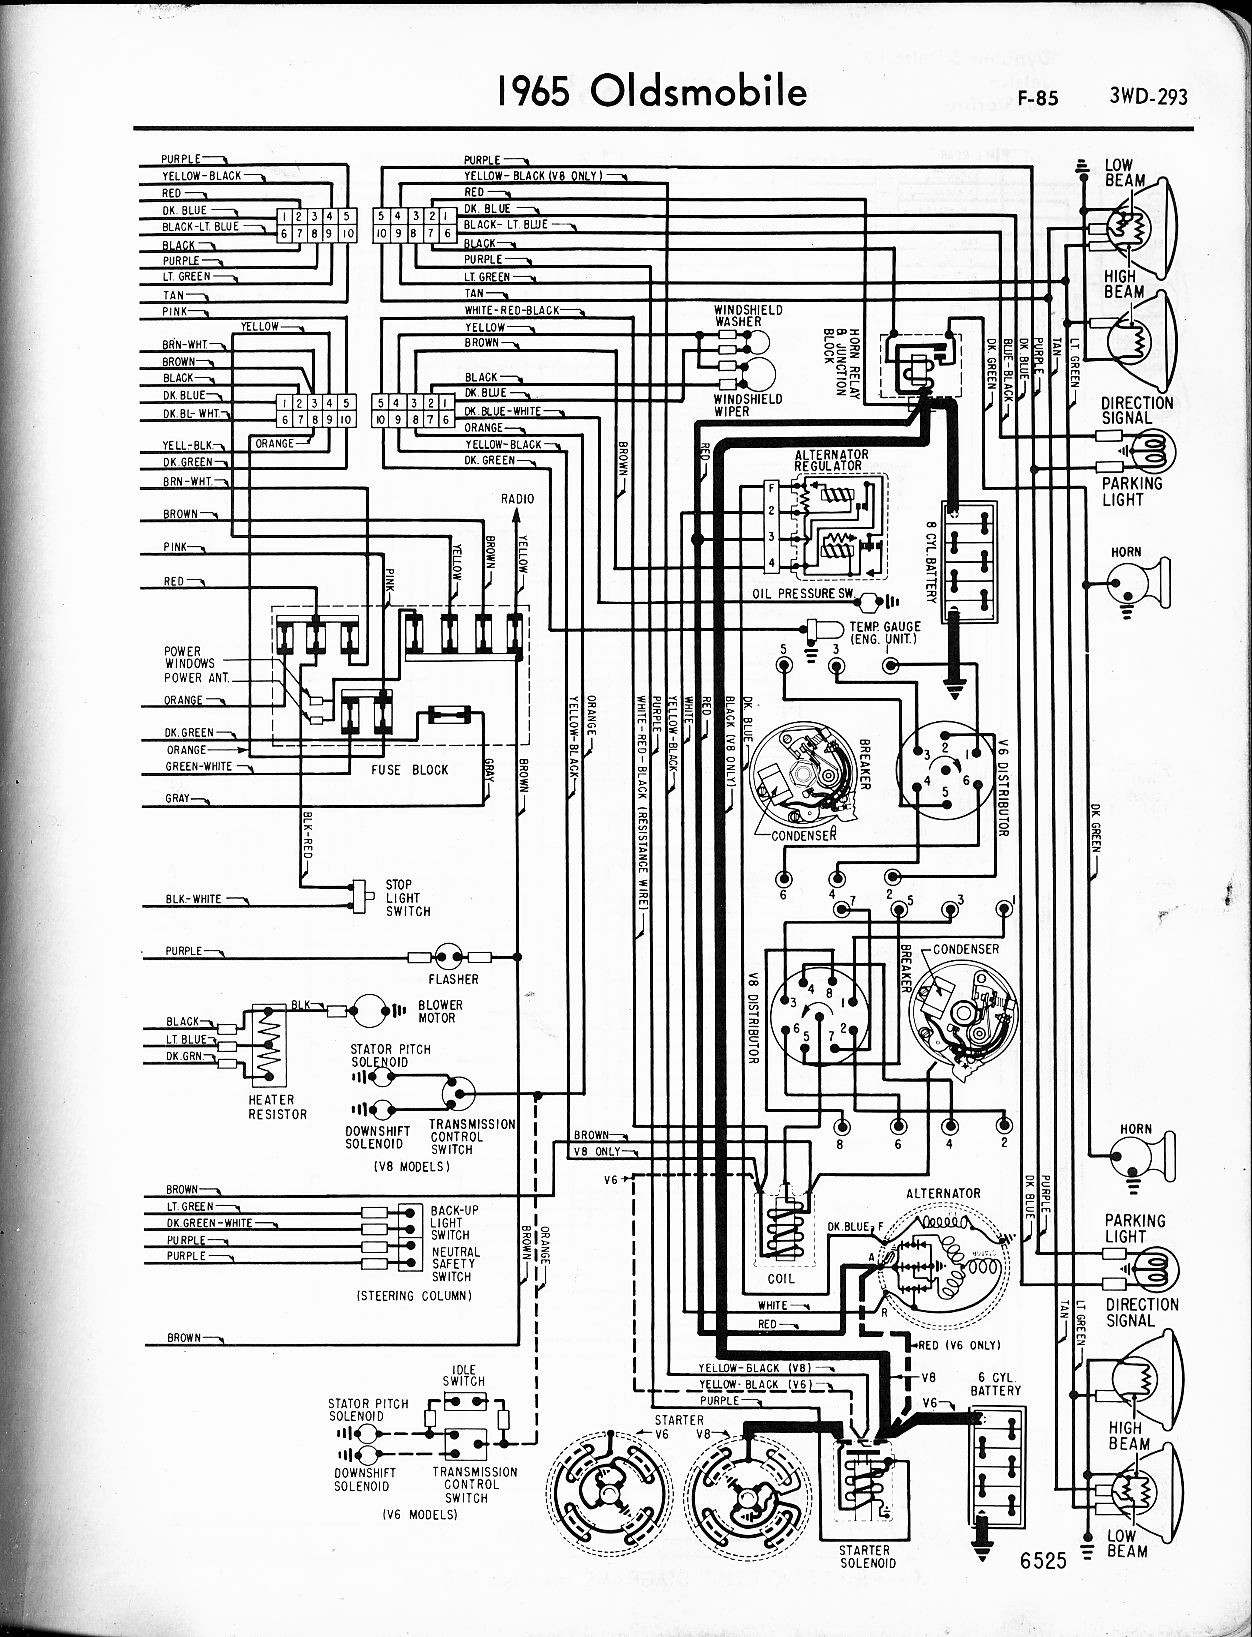 1968 Firebird Wiring Diagram 1969 Olds 442 Wiring Diagram Wiring Diagram Of 1968  Firebird Wiring Diagram